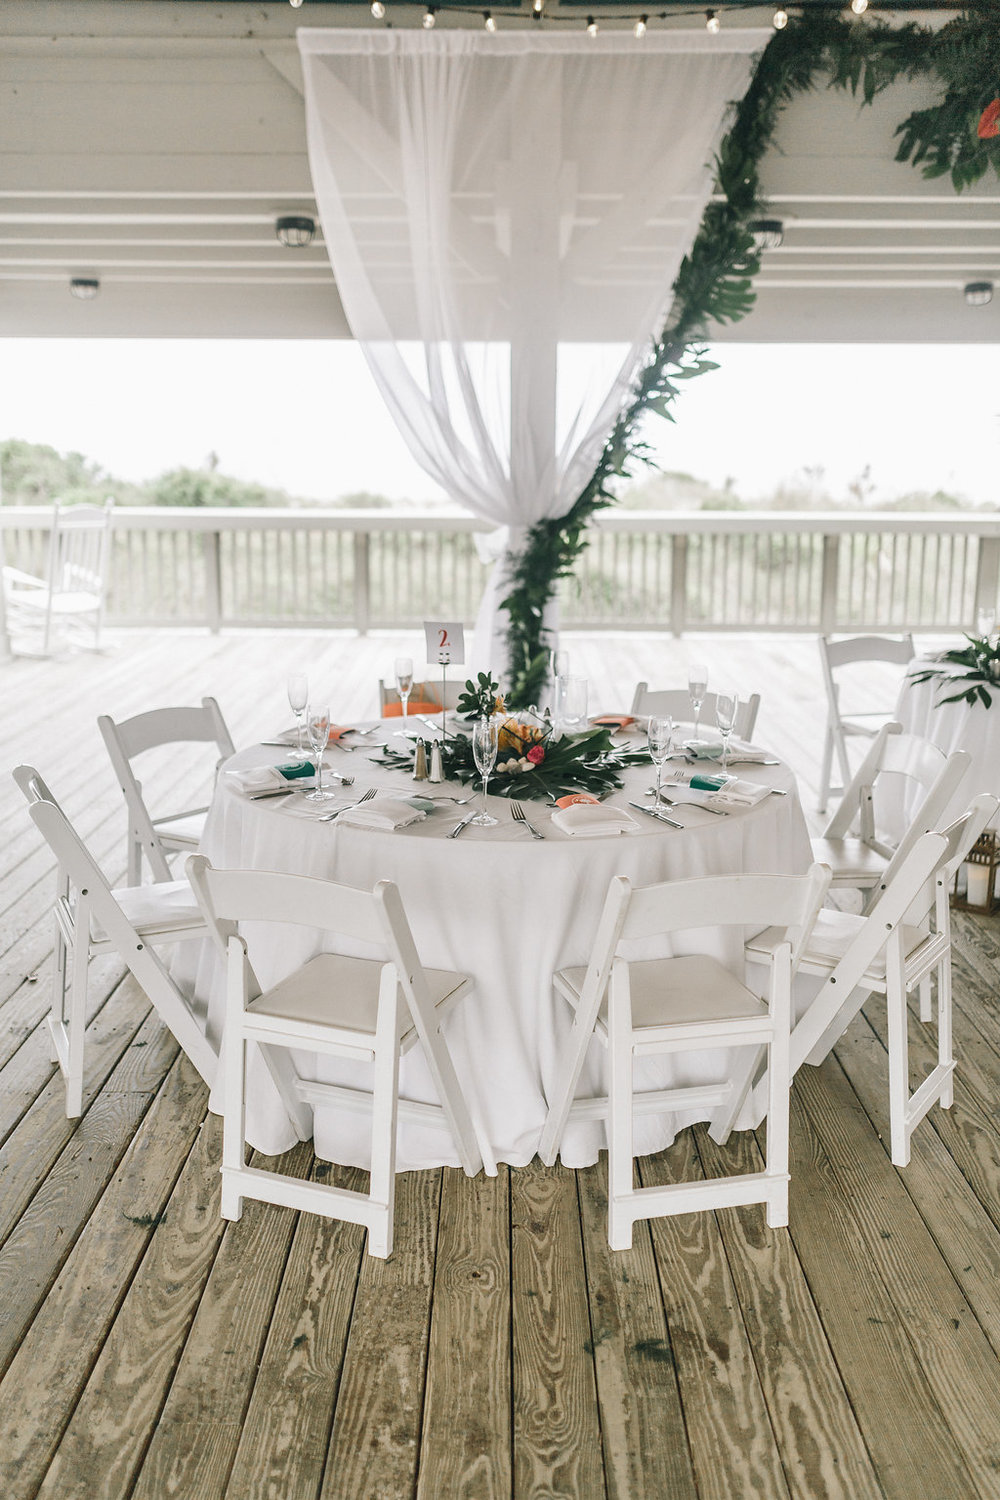 ivory-and-beau-bridal-boutique-candace-and-kevin-mackensey-alexander-photography-tropical-wedding-on-hilton-head-island-33.jpg